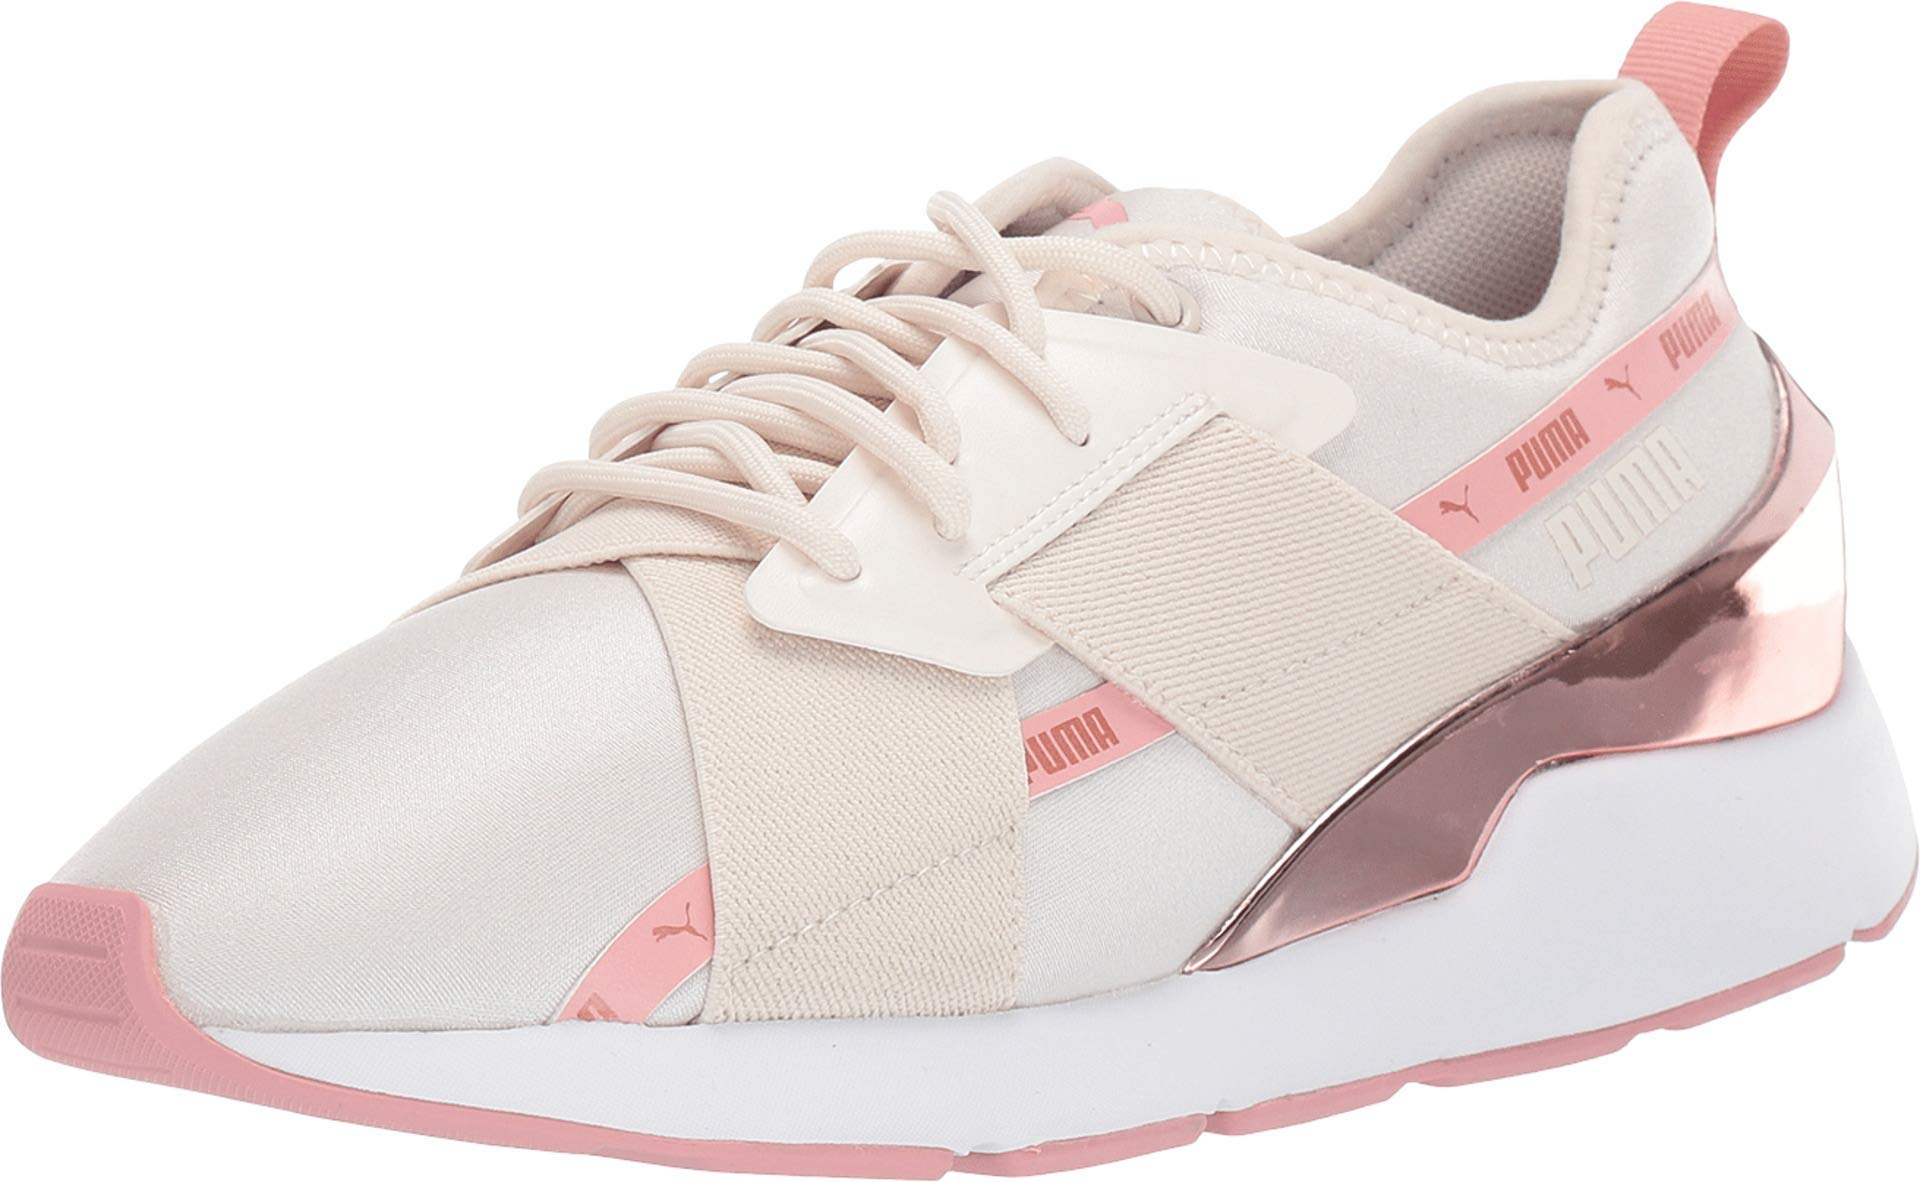 PUMA Women's Muse X-2 Metallic Shoes (9, Pink/Rose Gold)